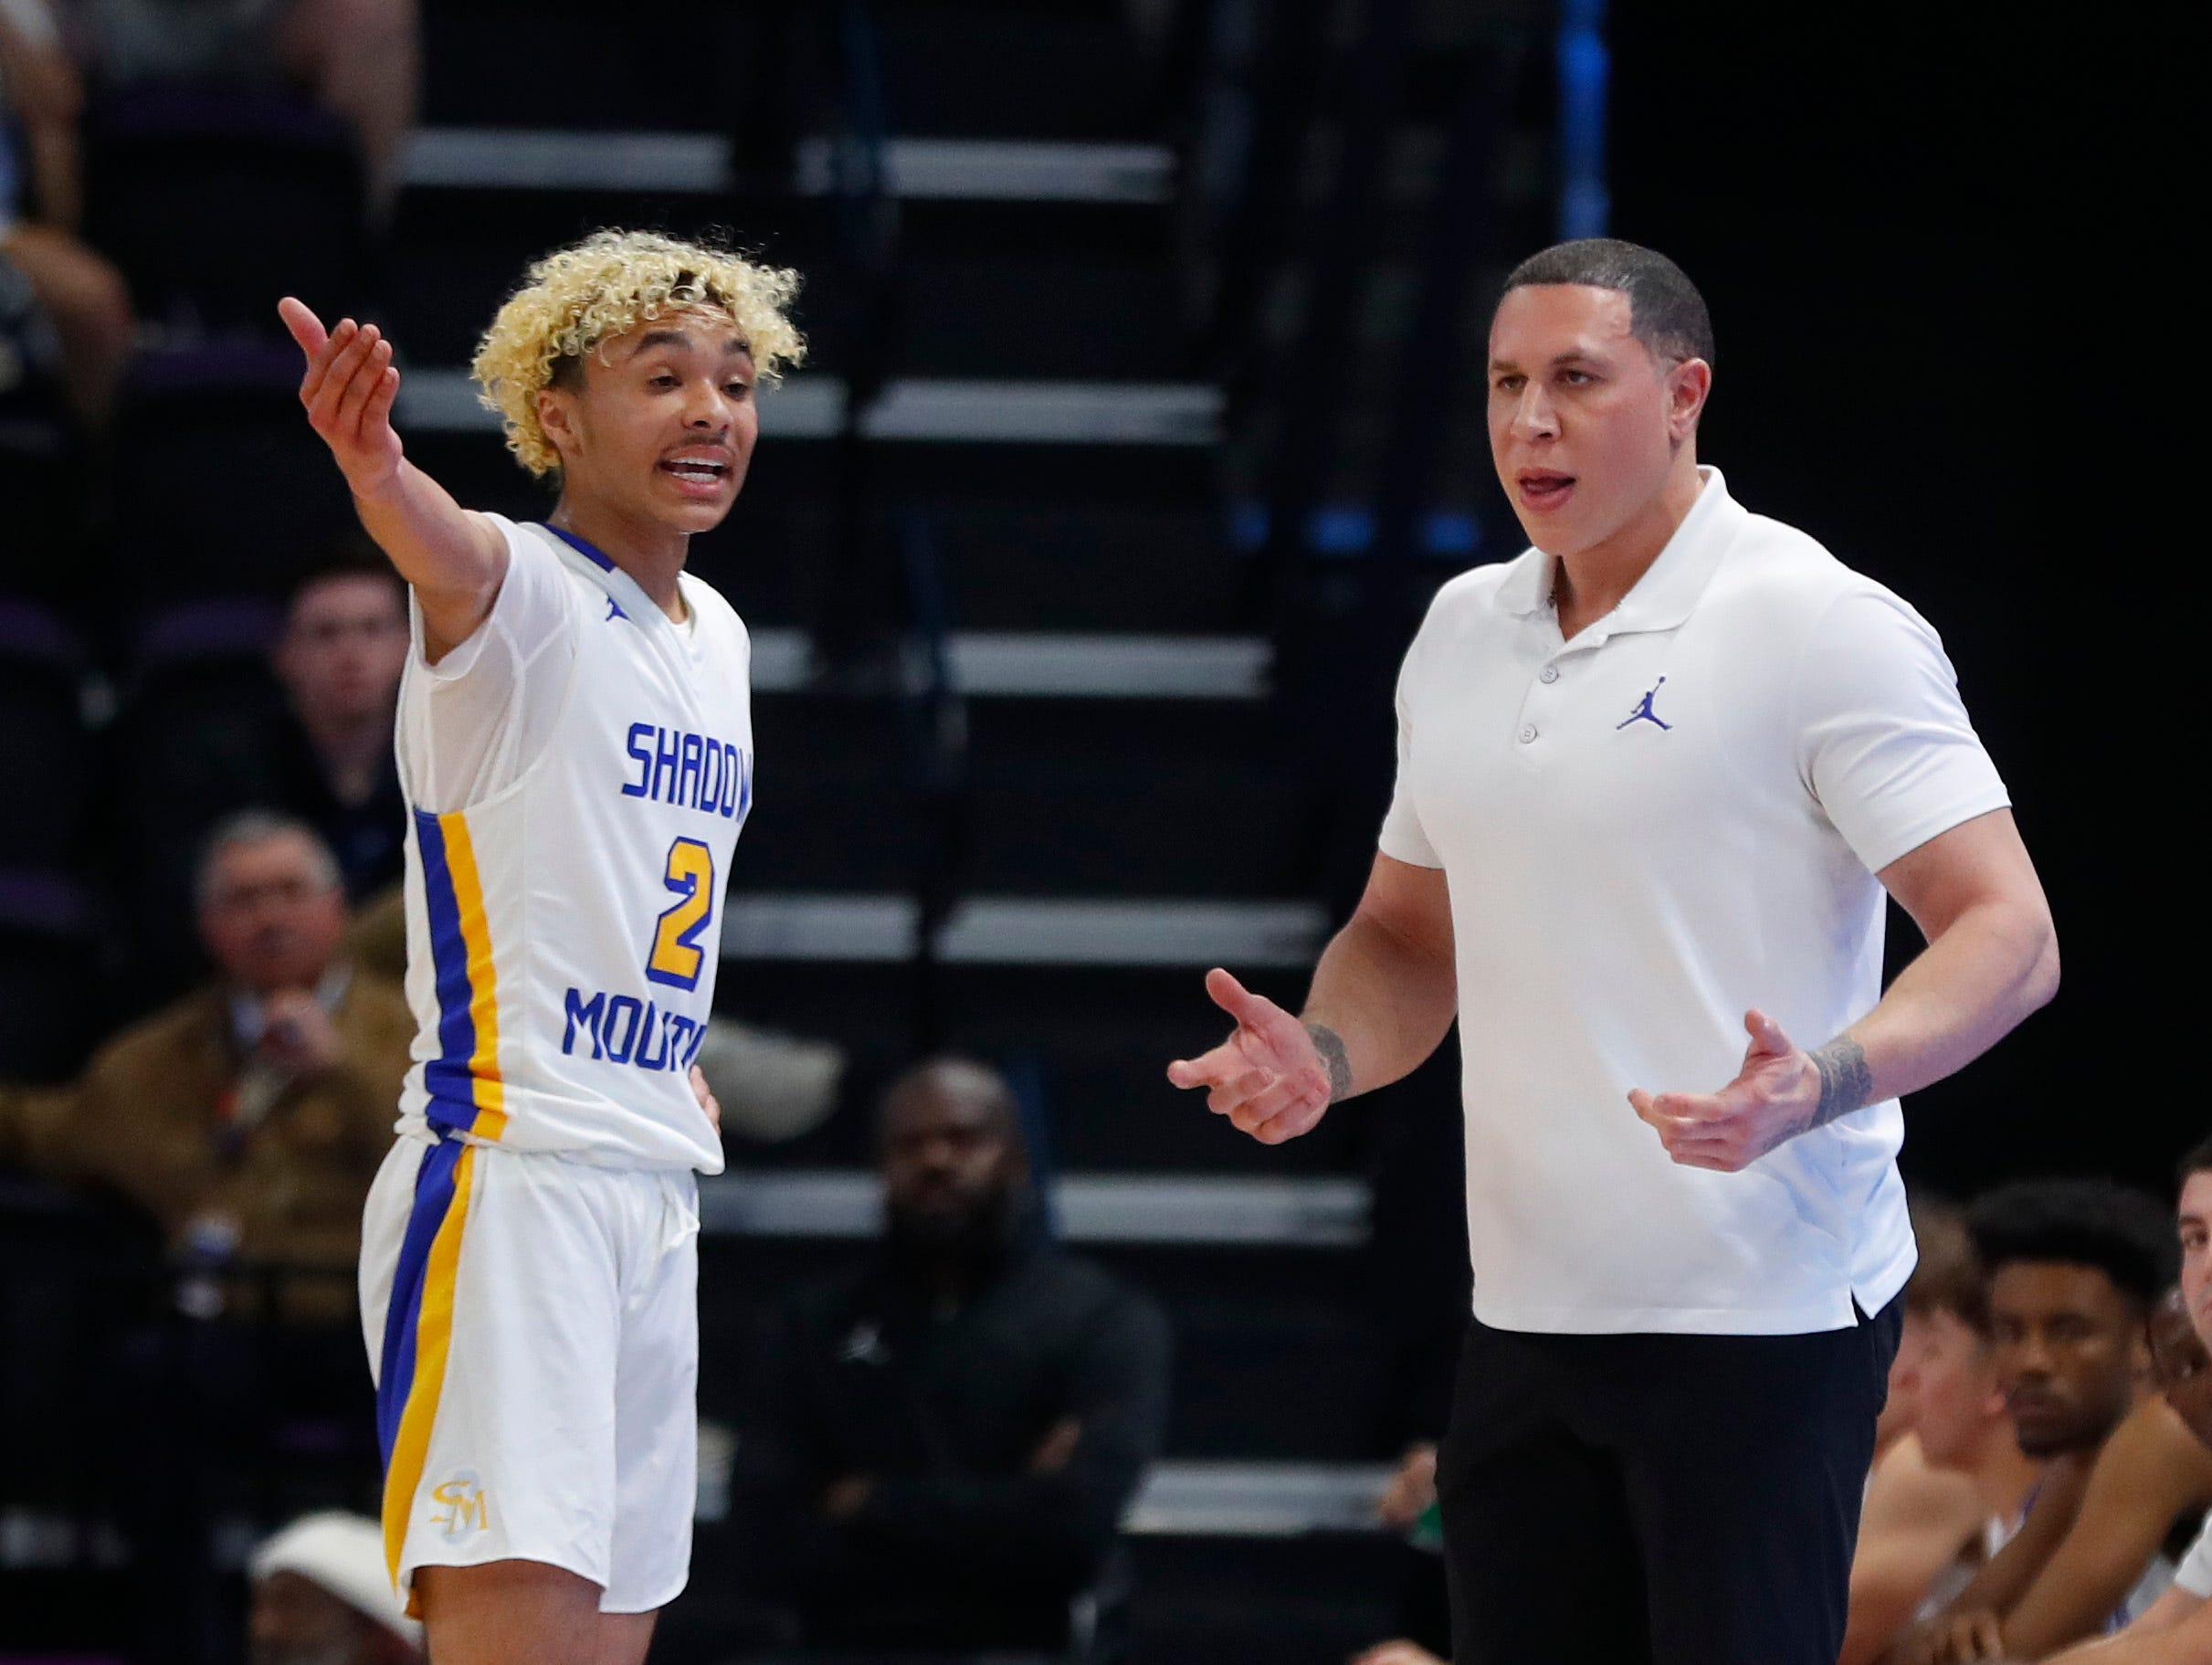 Shadow Mountain's head coach Mike Bibby talks with Jaelen House (2) during first half of the 4A boys basketball semifinal game against Salpointe Catholic at Grand Canyon University Arena in Phoenix, Ariz. on February 22, 2019.